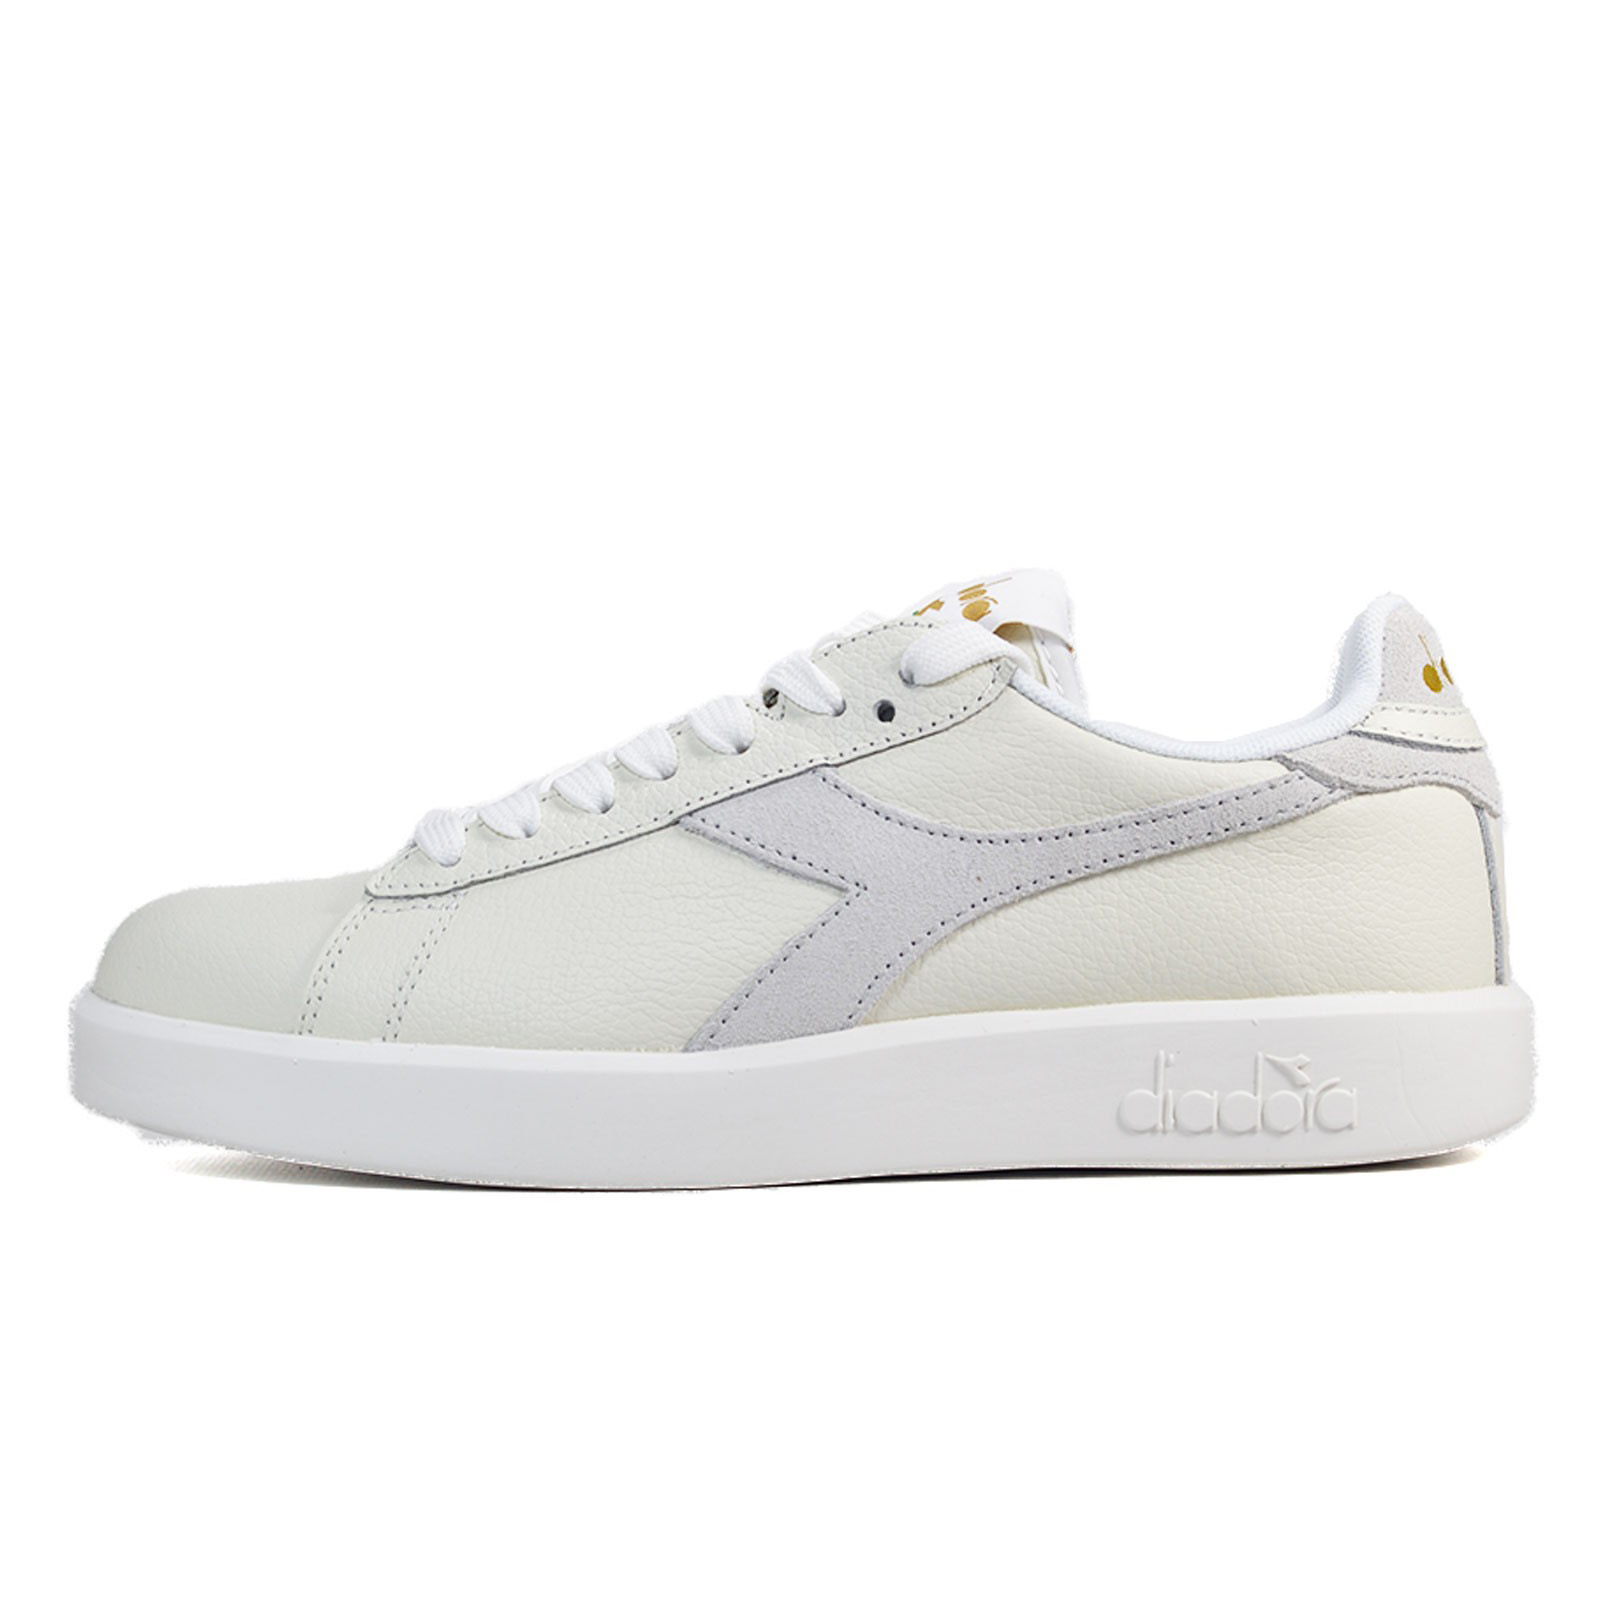 NS. 315124 DIADORA GAME WIDE L 20006 35